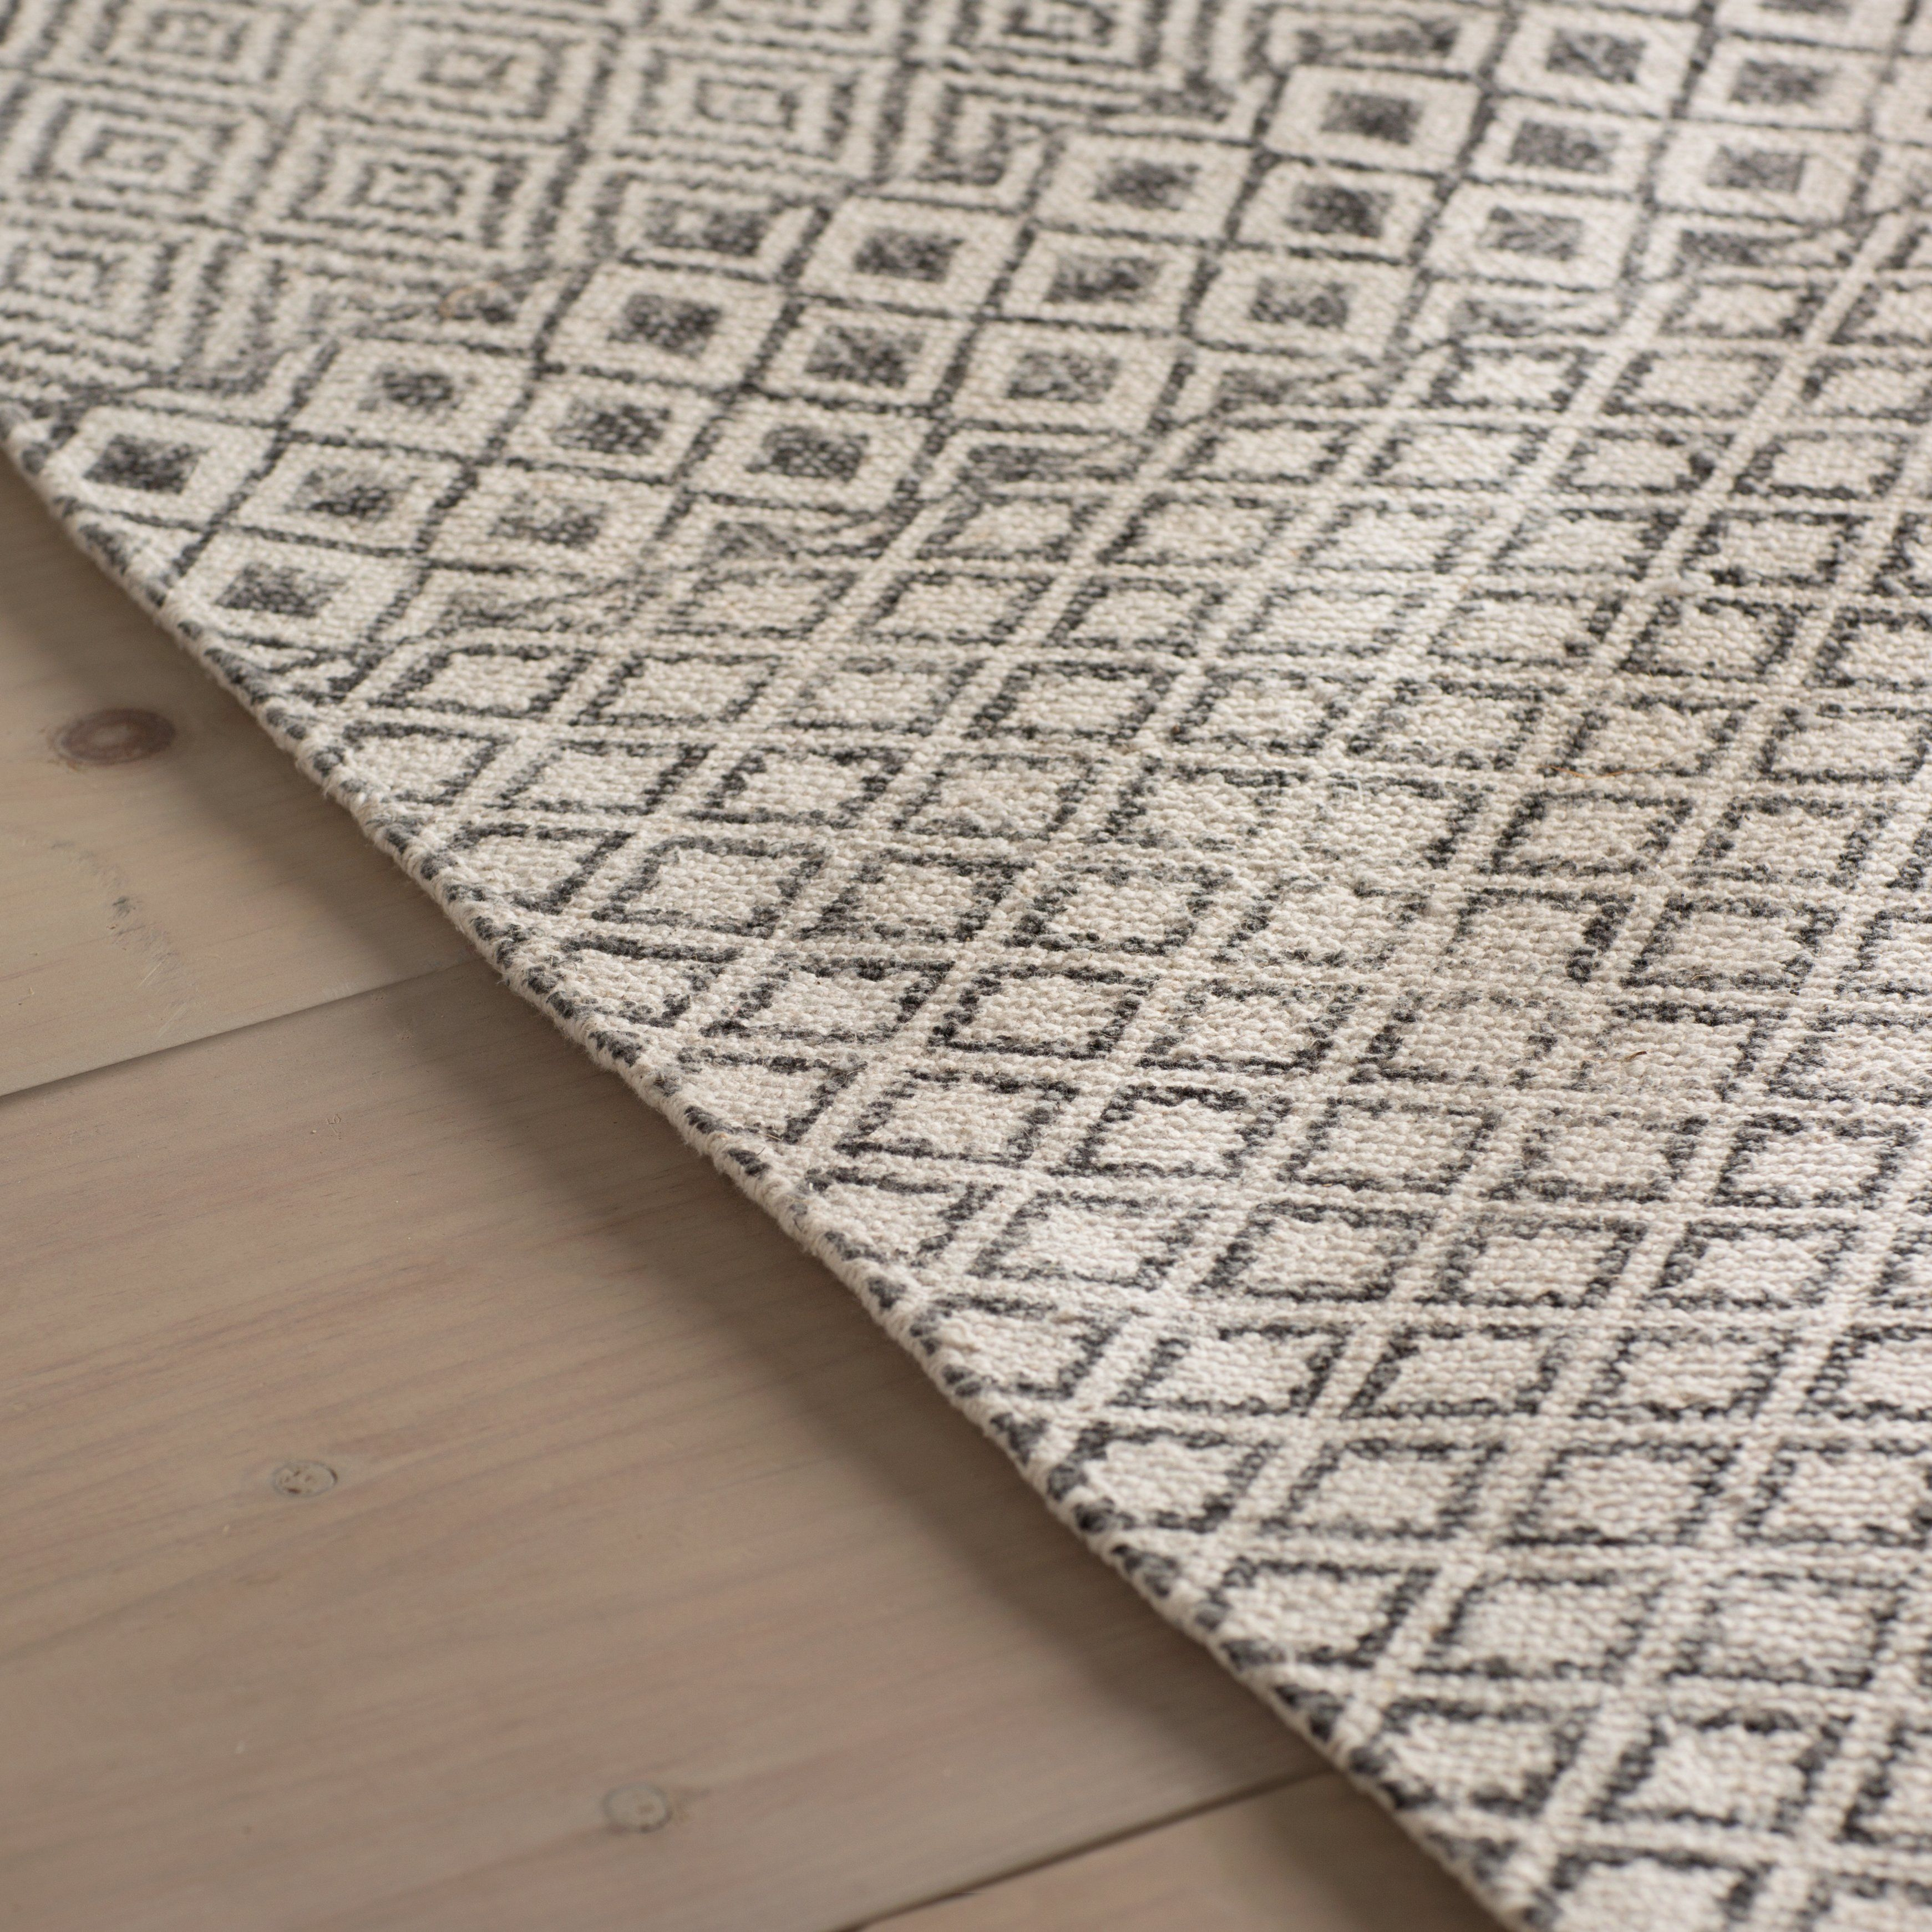 Oldtown Hand Woven Gray Area Rug Apartment 225 Rugs